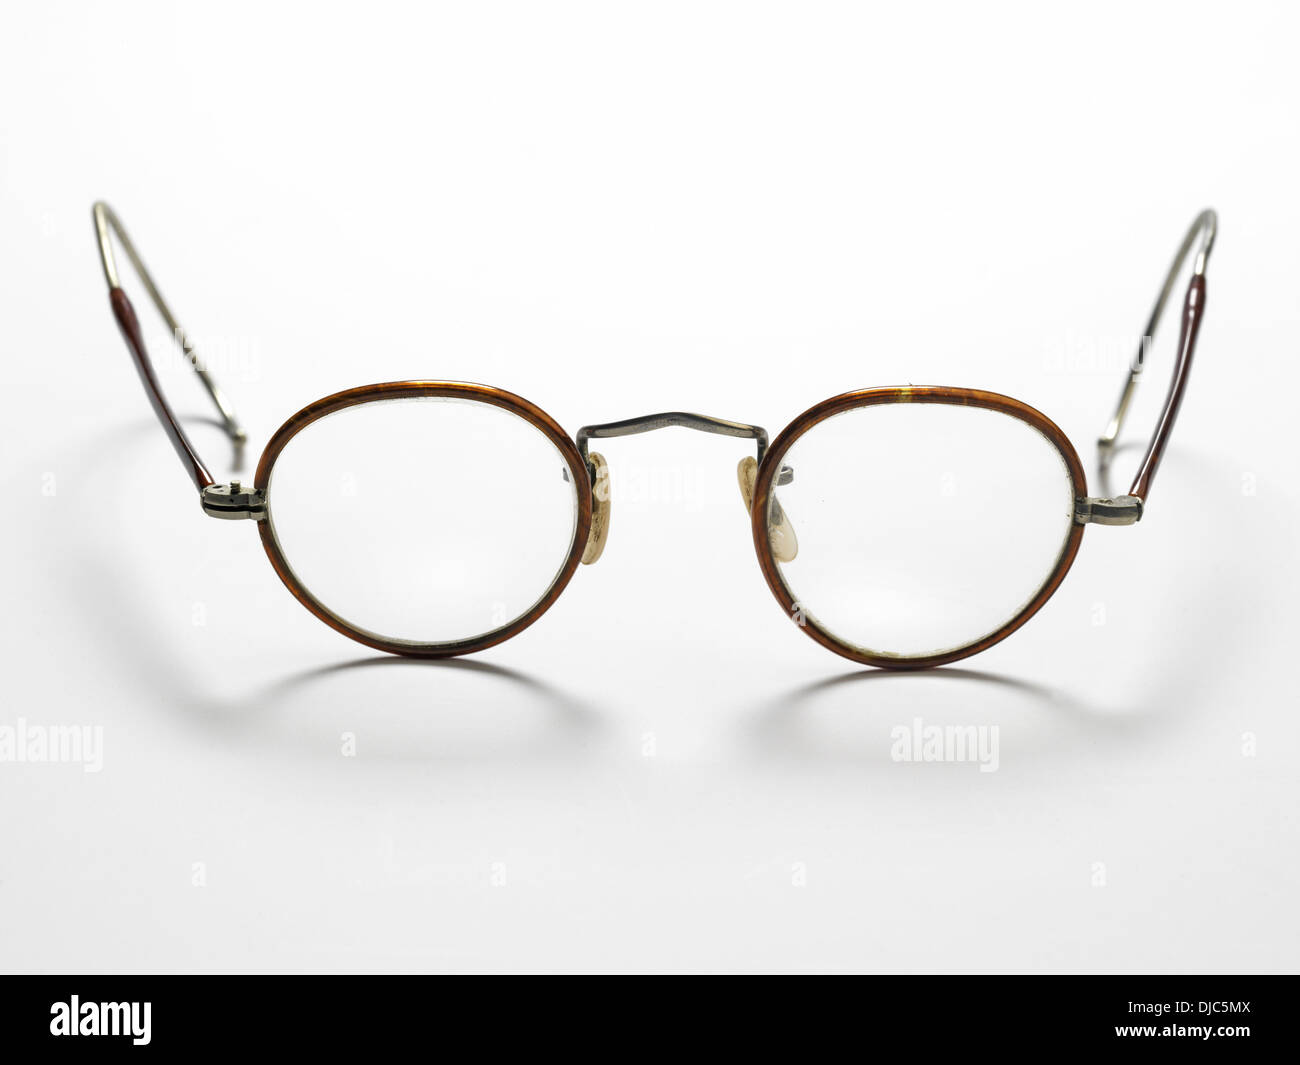 Pair of old fashioned glasses with wire frames Stock Photo: 62962842 ...